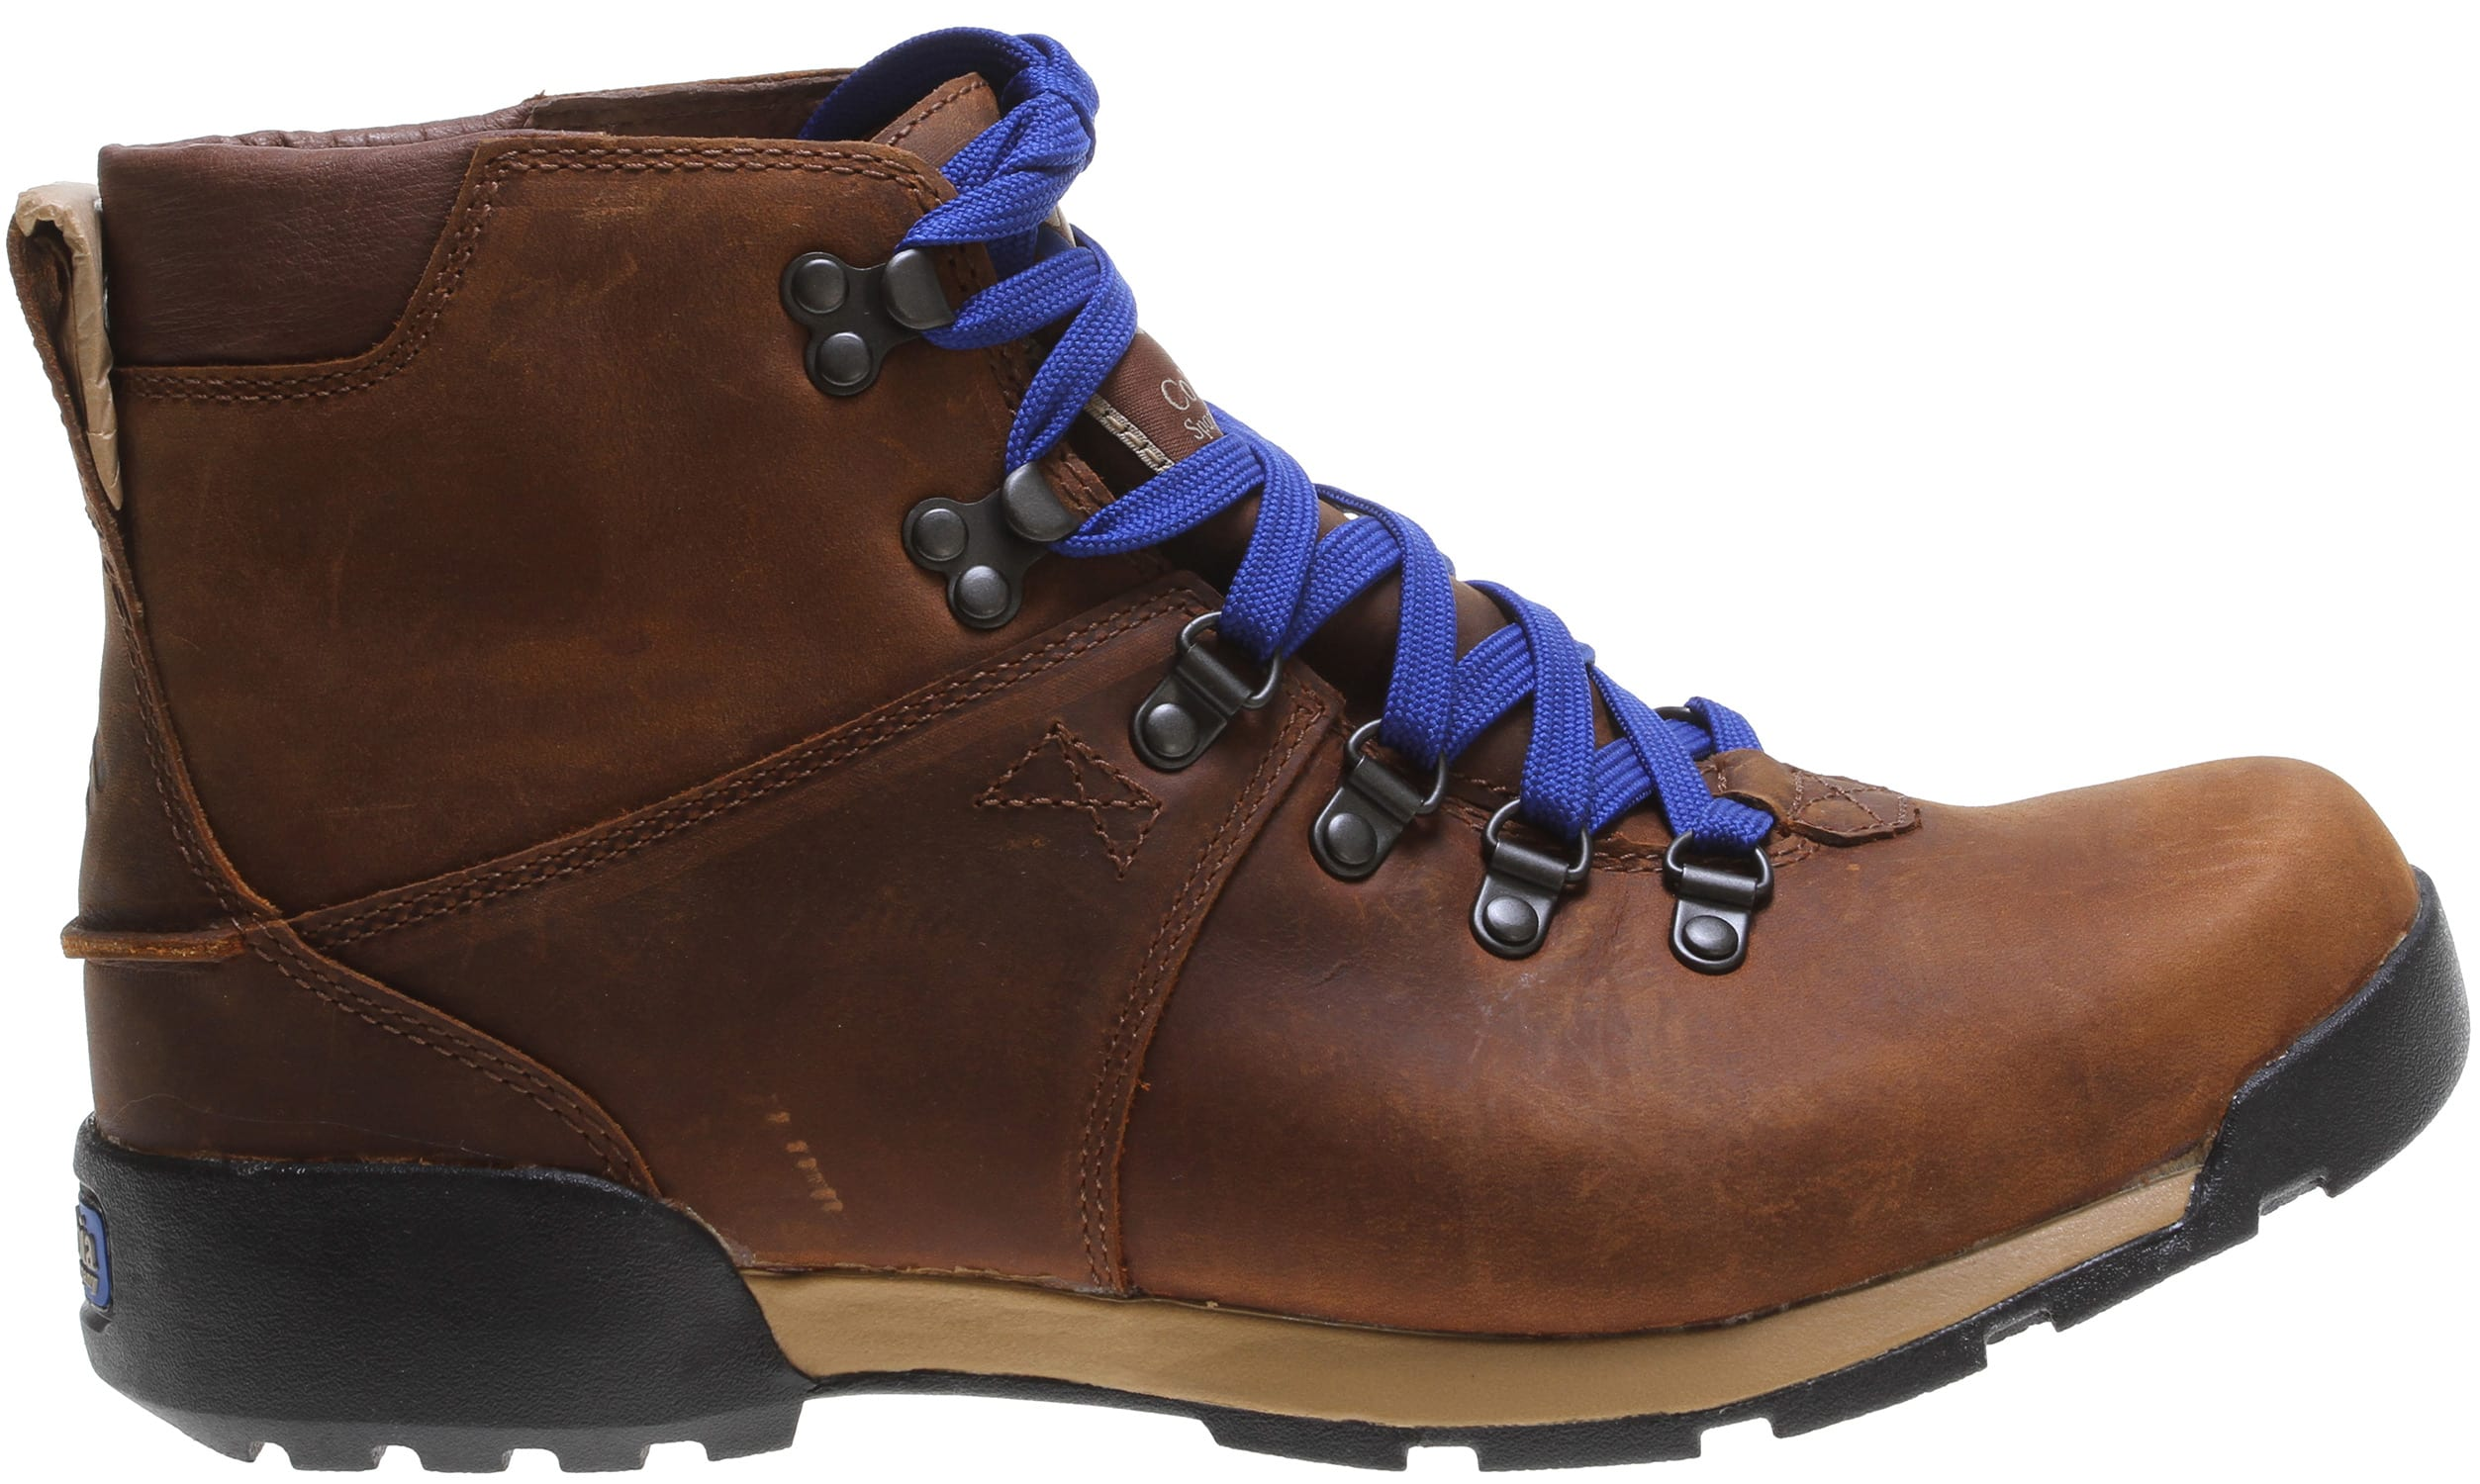 On Sale Columbia Original Alpine Hiking Boots up to 50% off